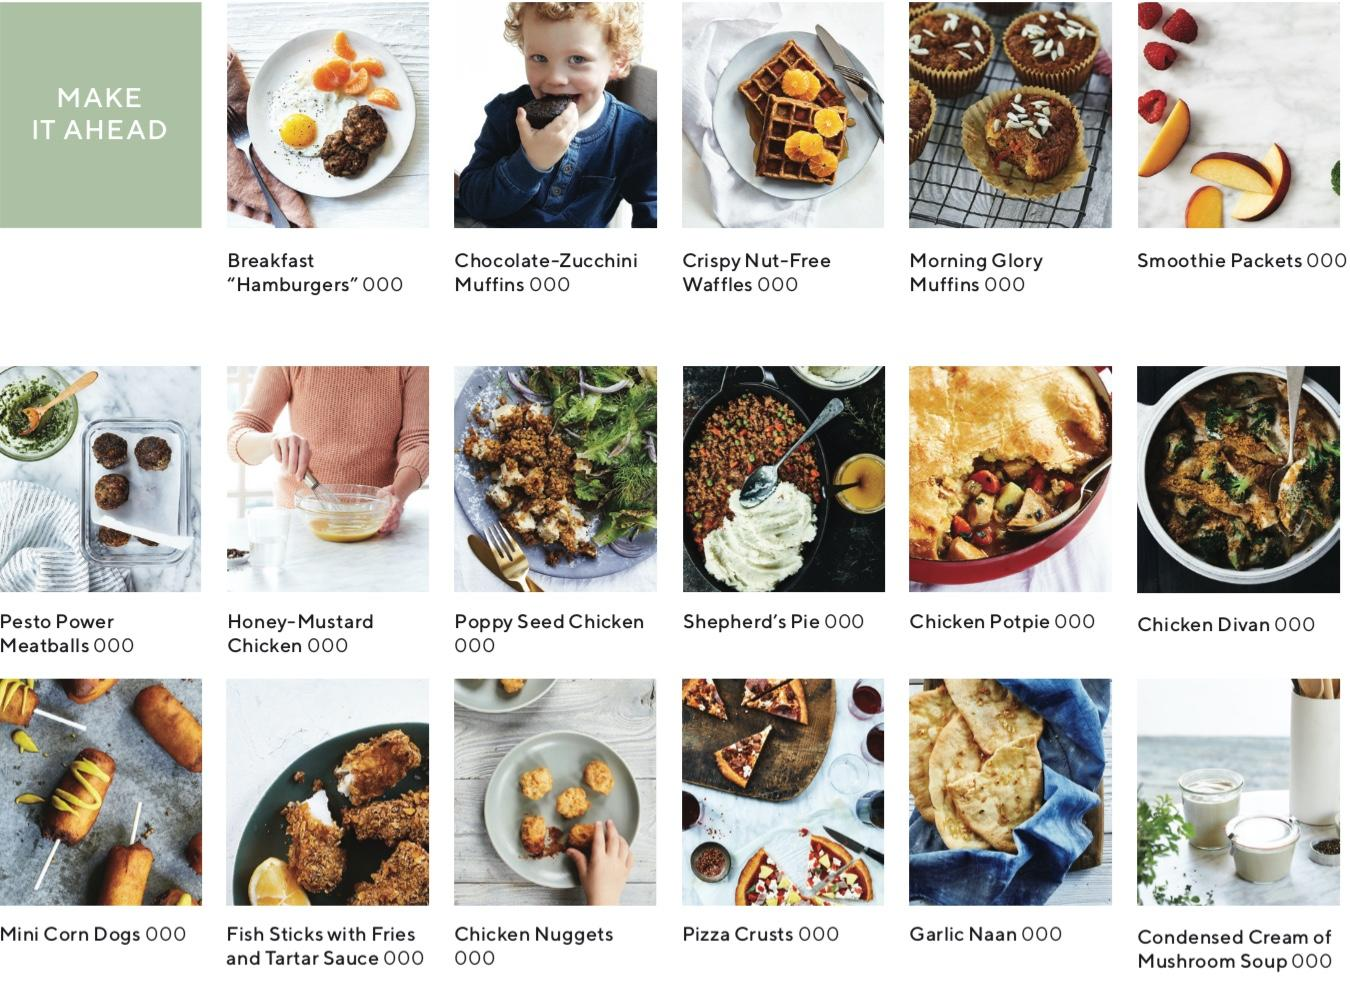 recipe index showing images of recipes that you can make ahead